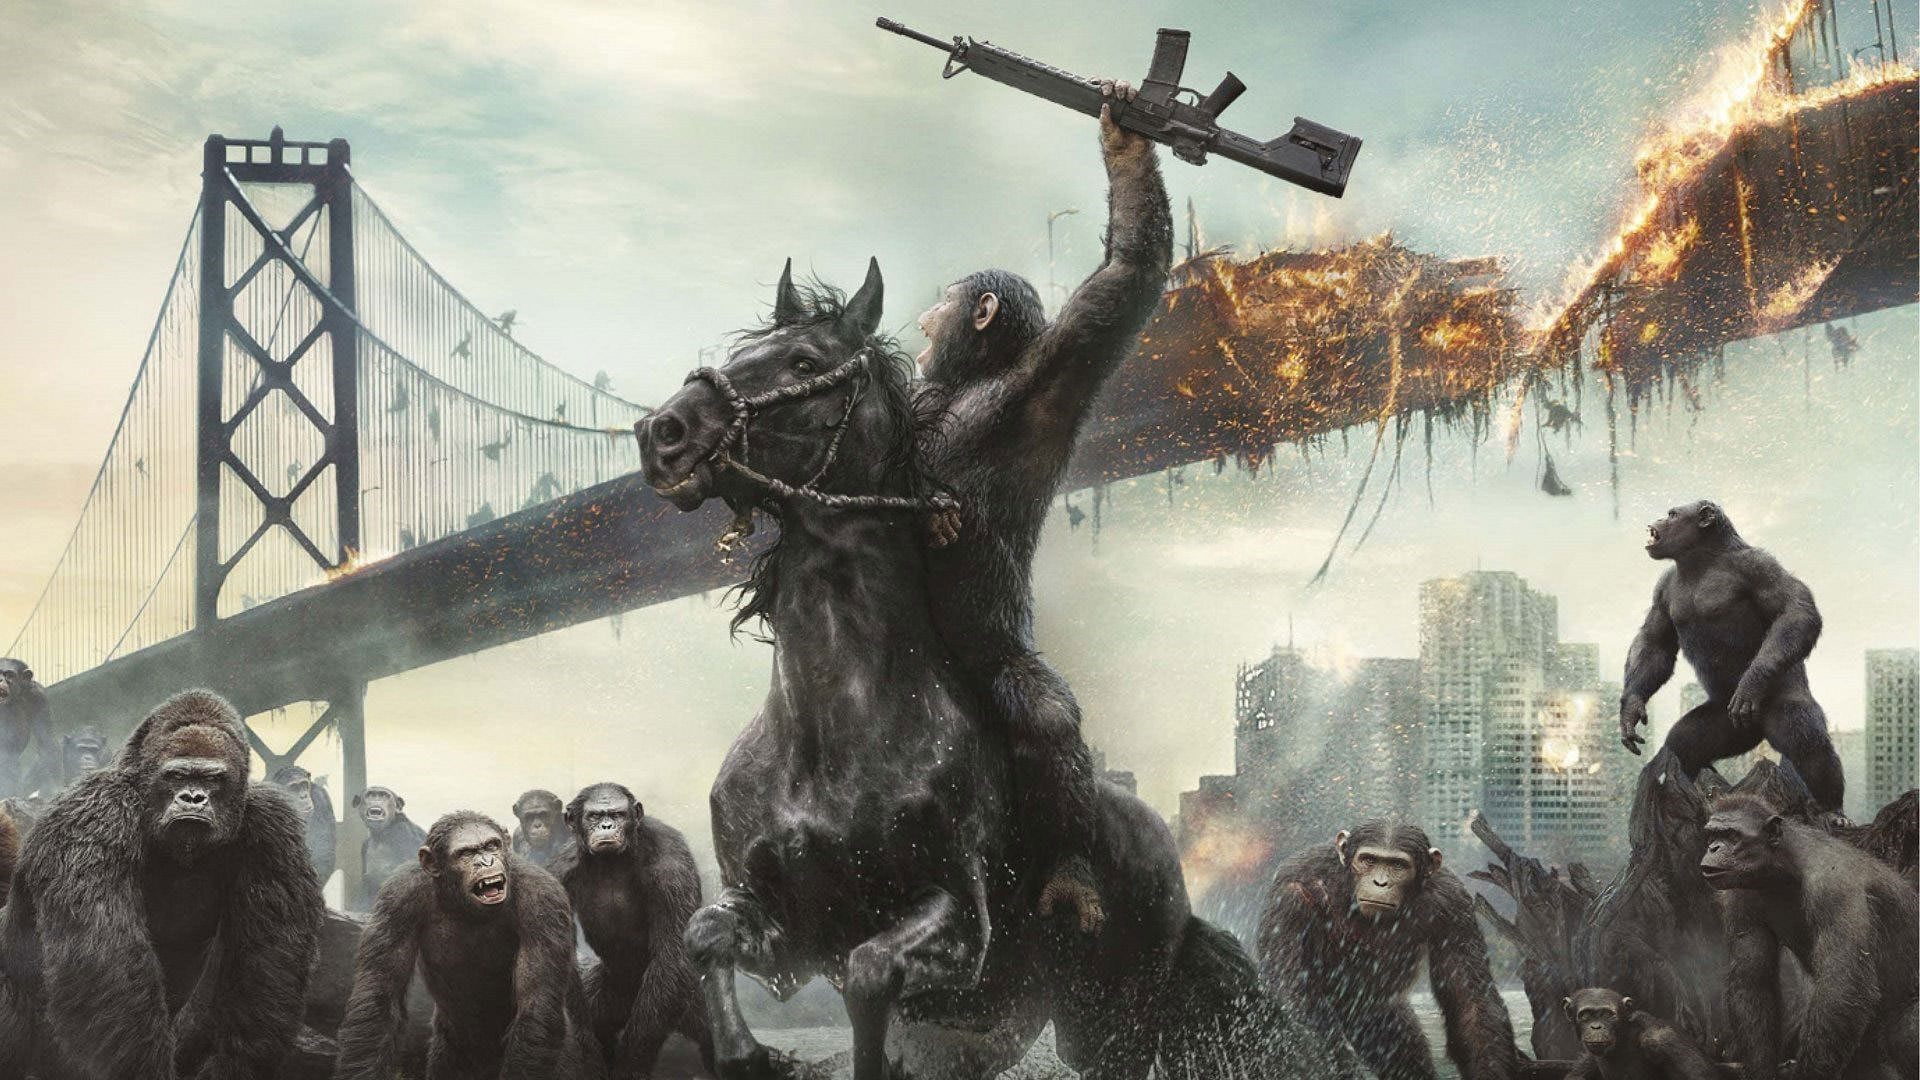 گیشه: معرفی فیلم Dawn of the Planet of the Apes